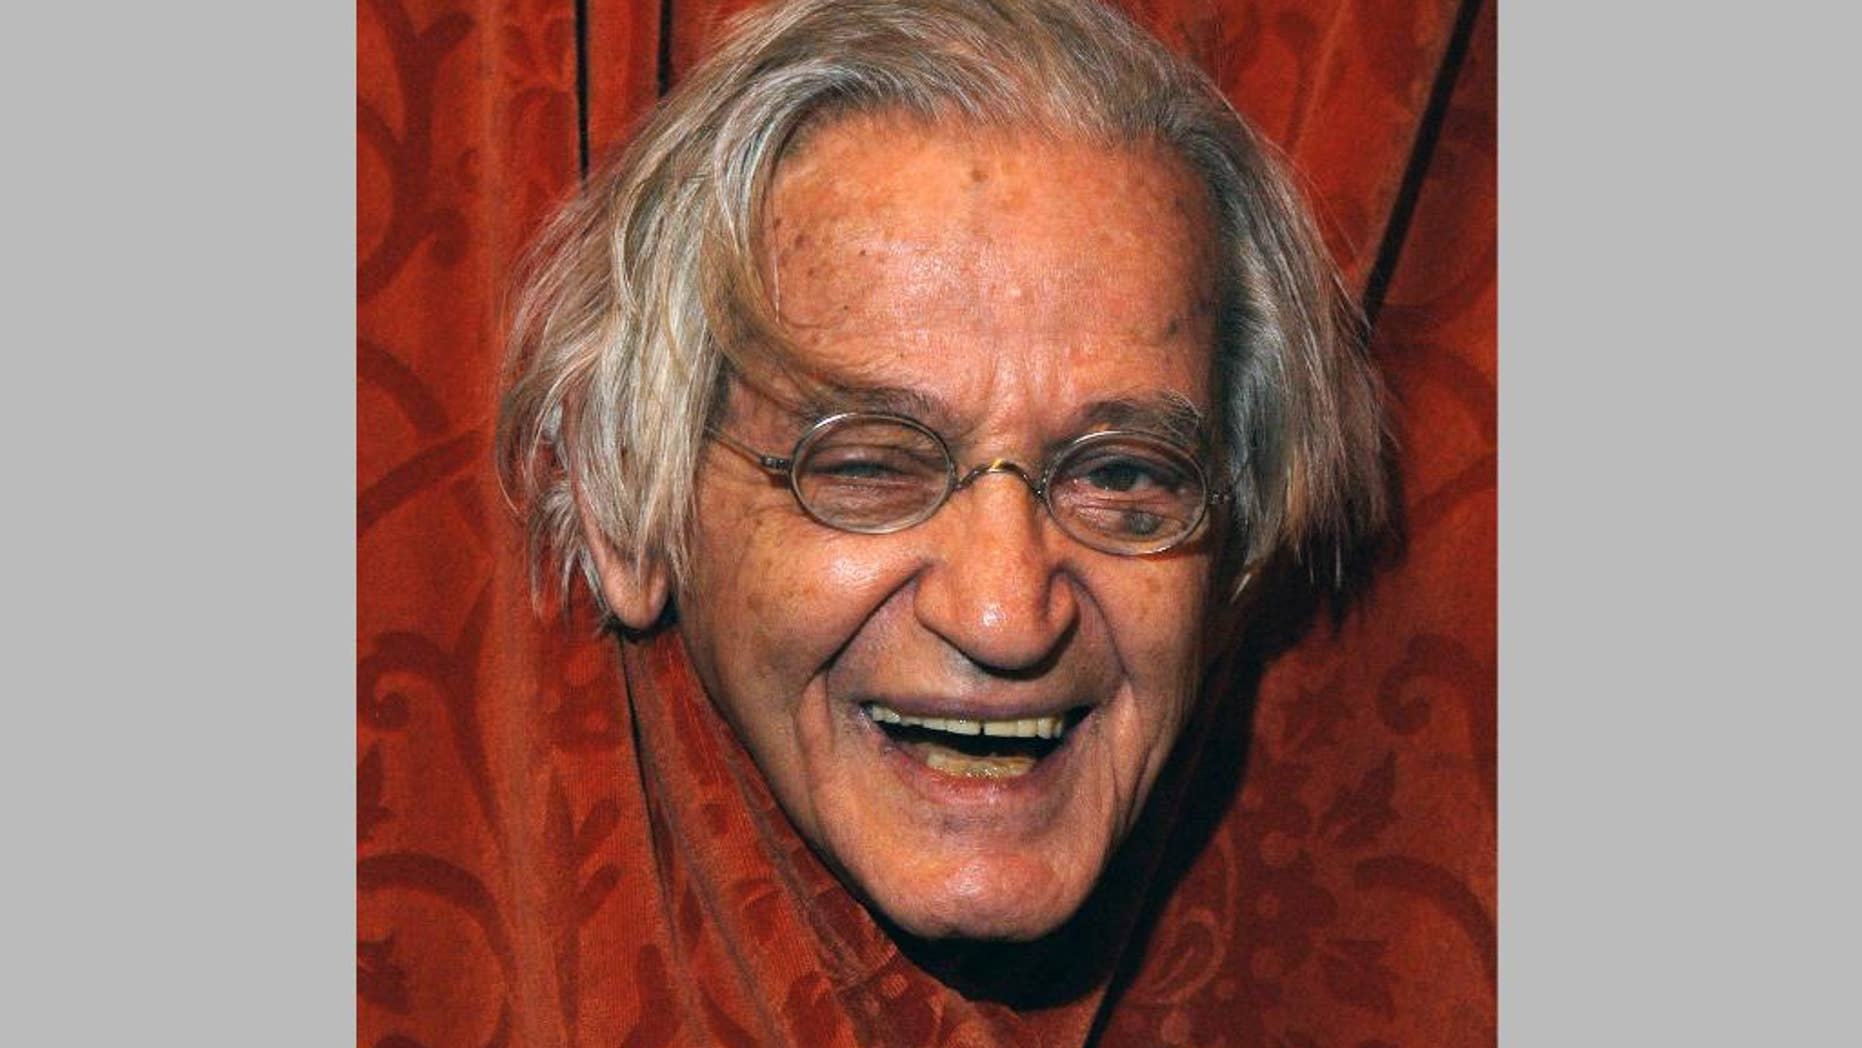 """FILE - This April 24, 2004 file photo shows comedian Irwin Corey at the Ethel Barrymore Theatre in New York. Corey, the wild-haired comedian and actor who was known for his nonsensical style and who billed himself as """"The World's Foremost Authority,"""" died Monday, Feb. 6, 2017, at his home in Manhattan. He was 102. (AP Photo/Jim Cooper, File)"""